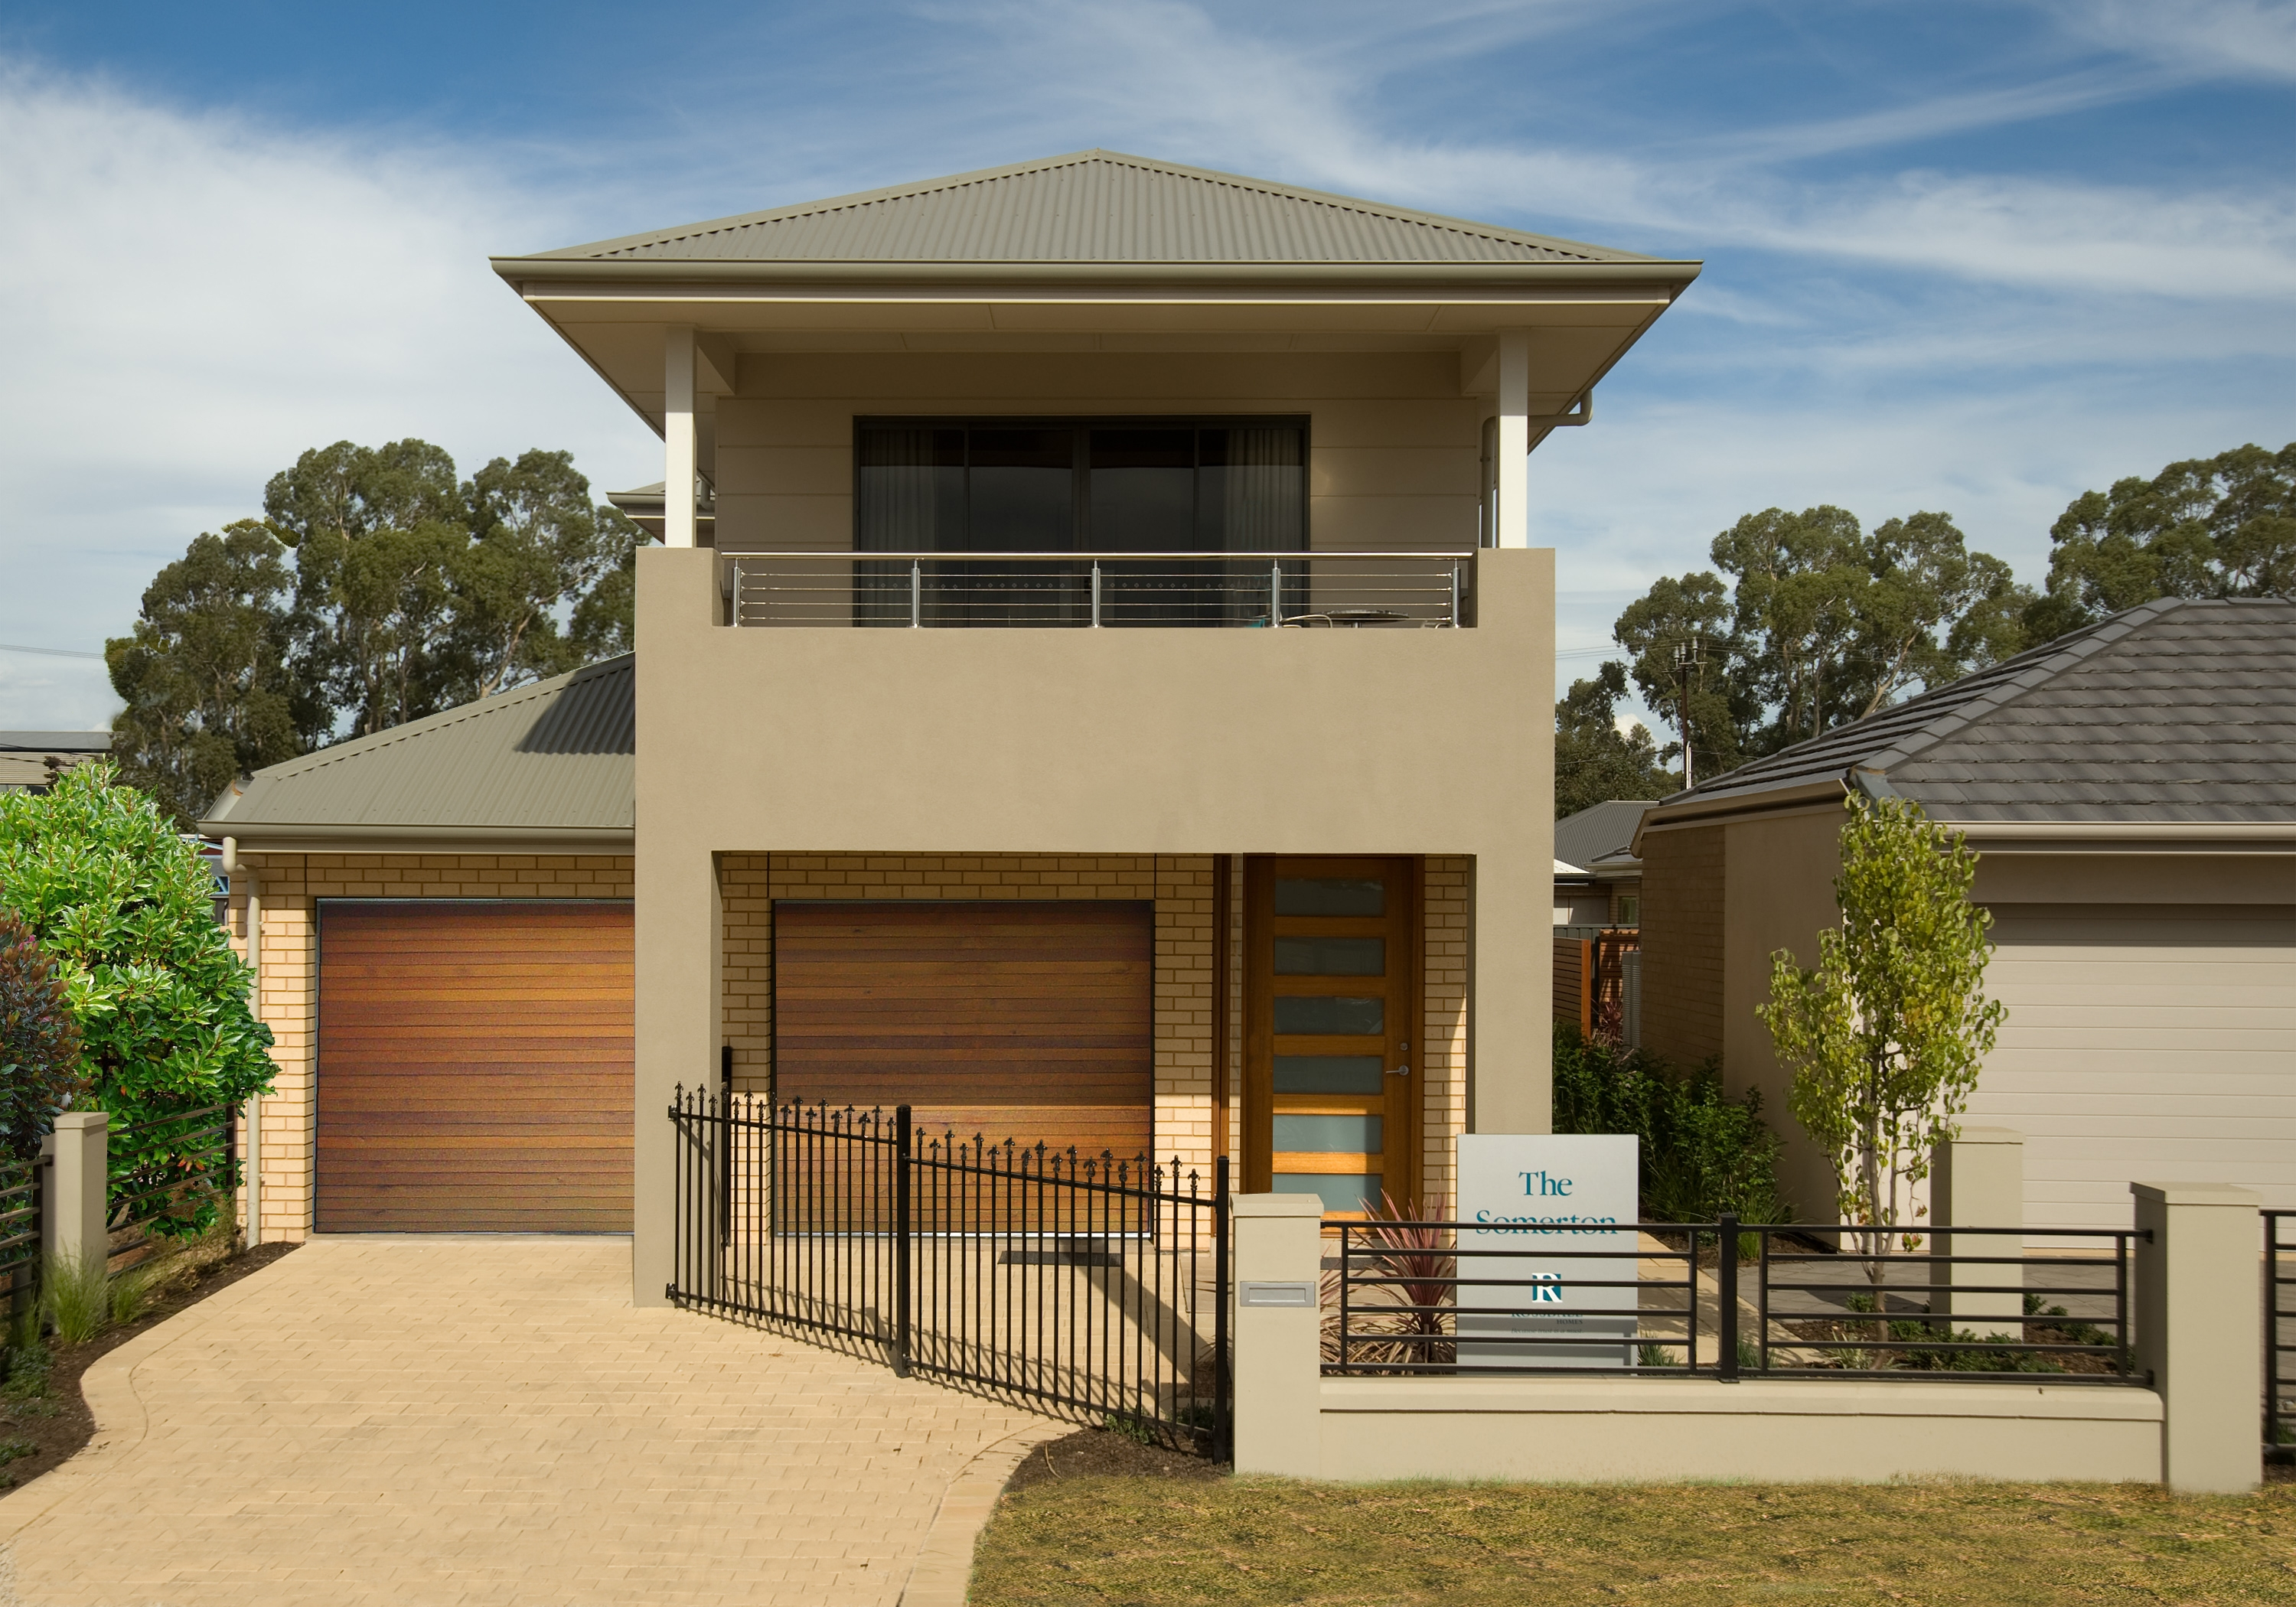 Two Storey House Designs Adelaide 28 Images Two Storey